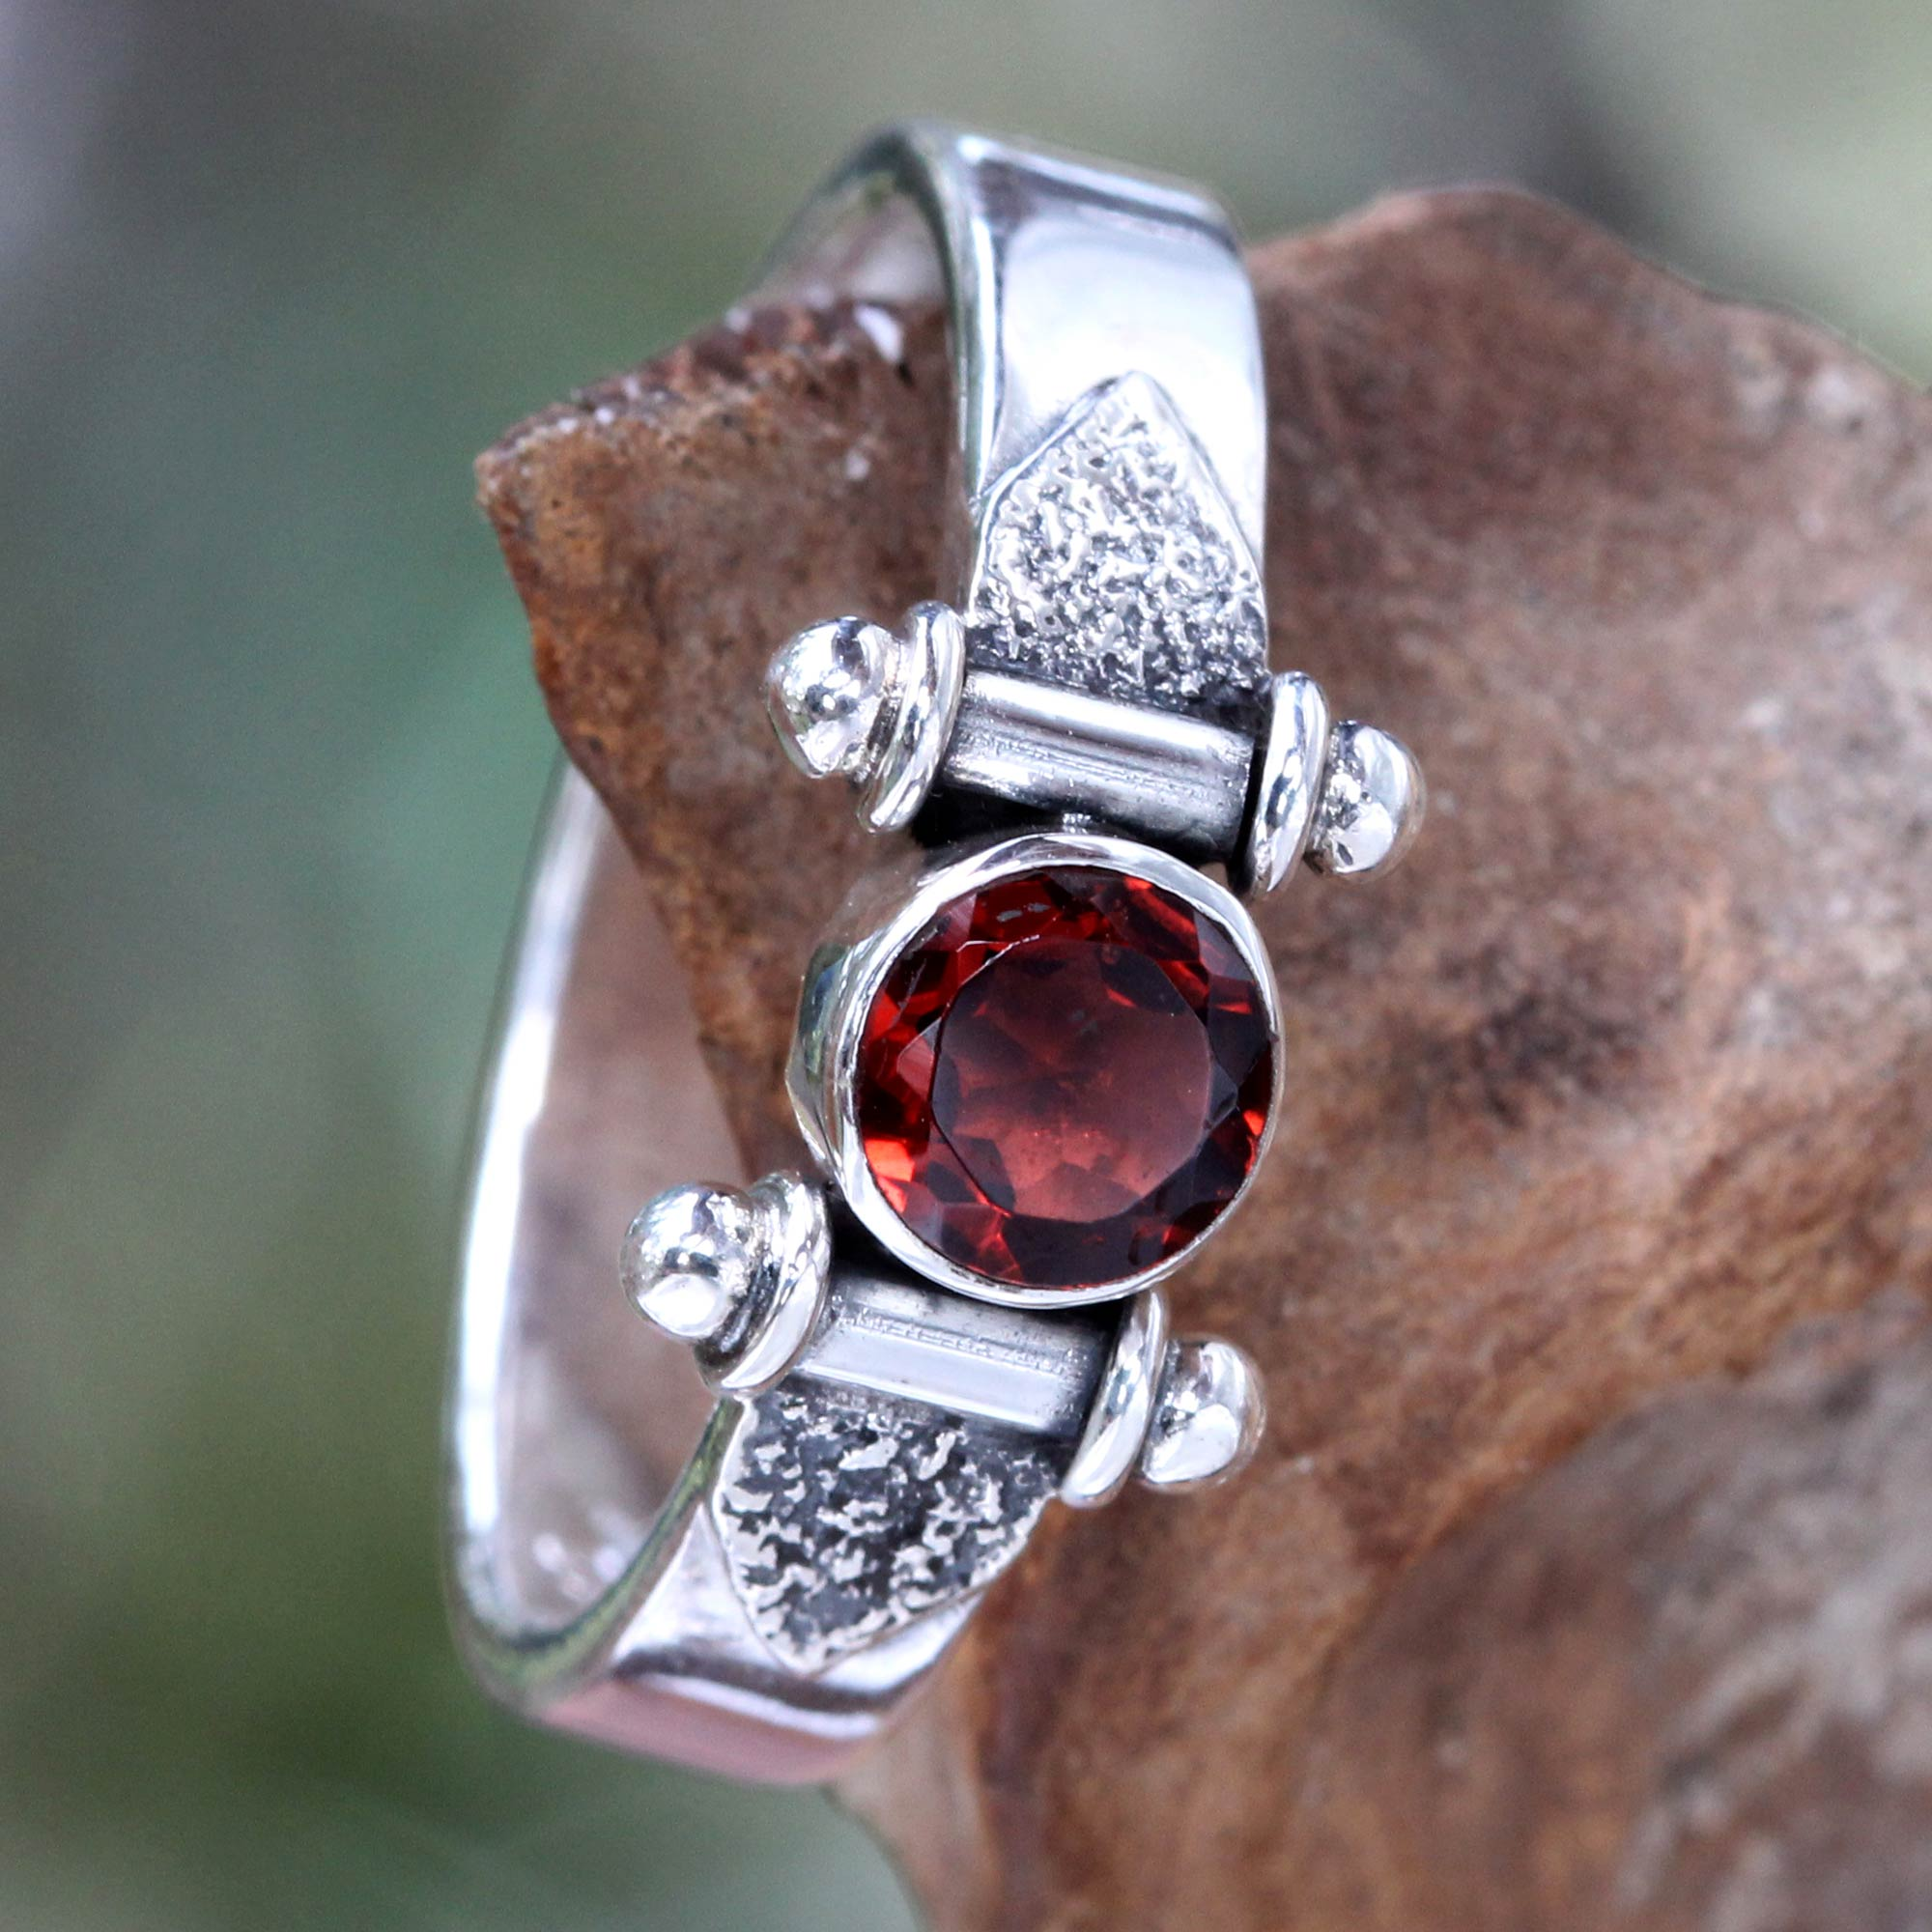 garnet jewelry modern sterling silver garnet ring - mystical eye | novica uklalos